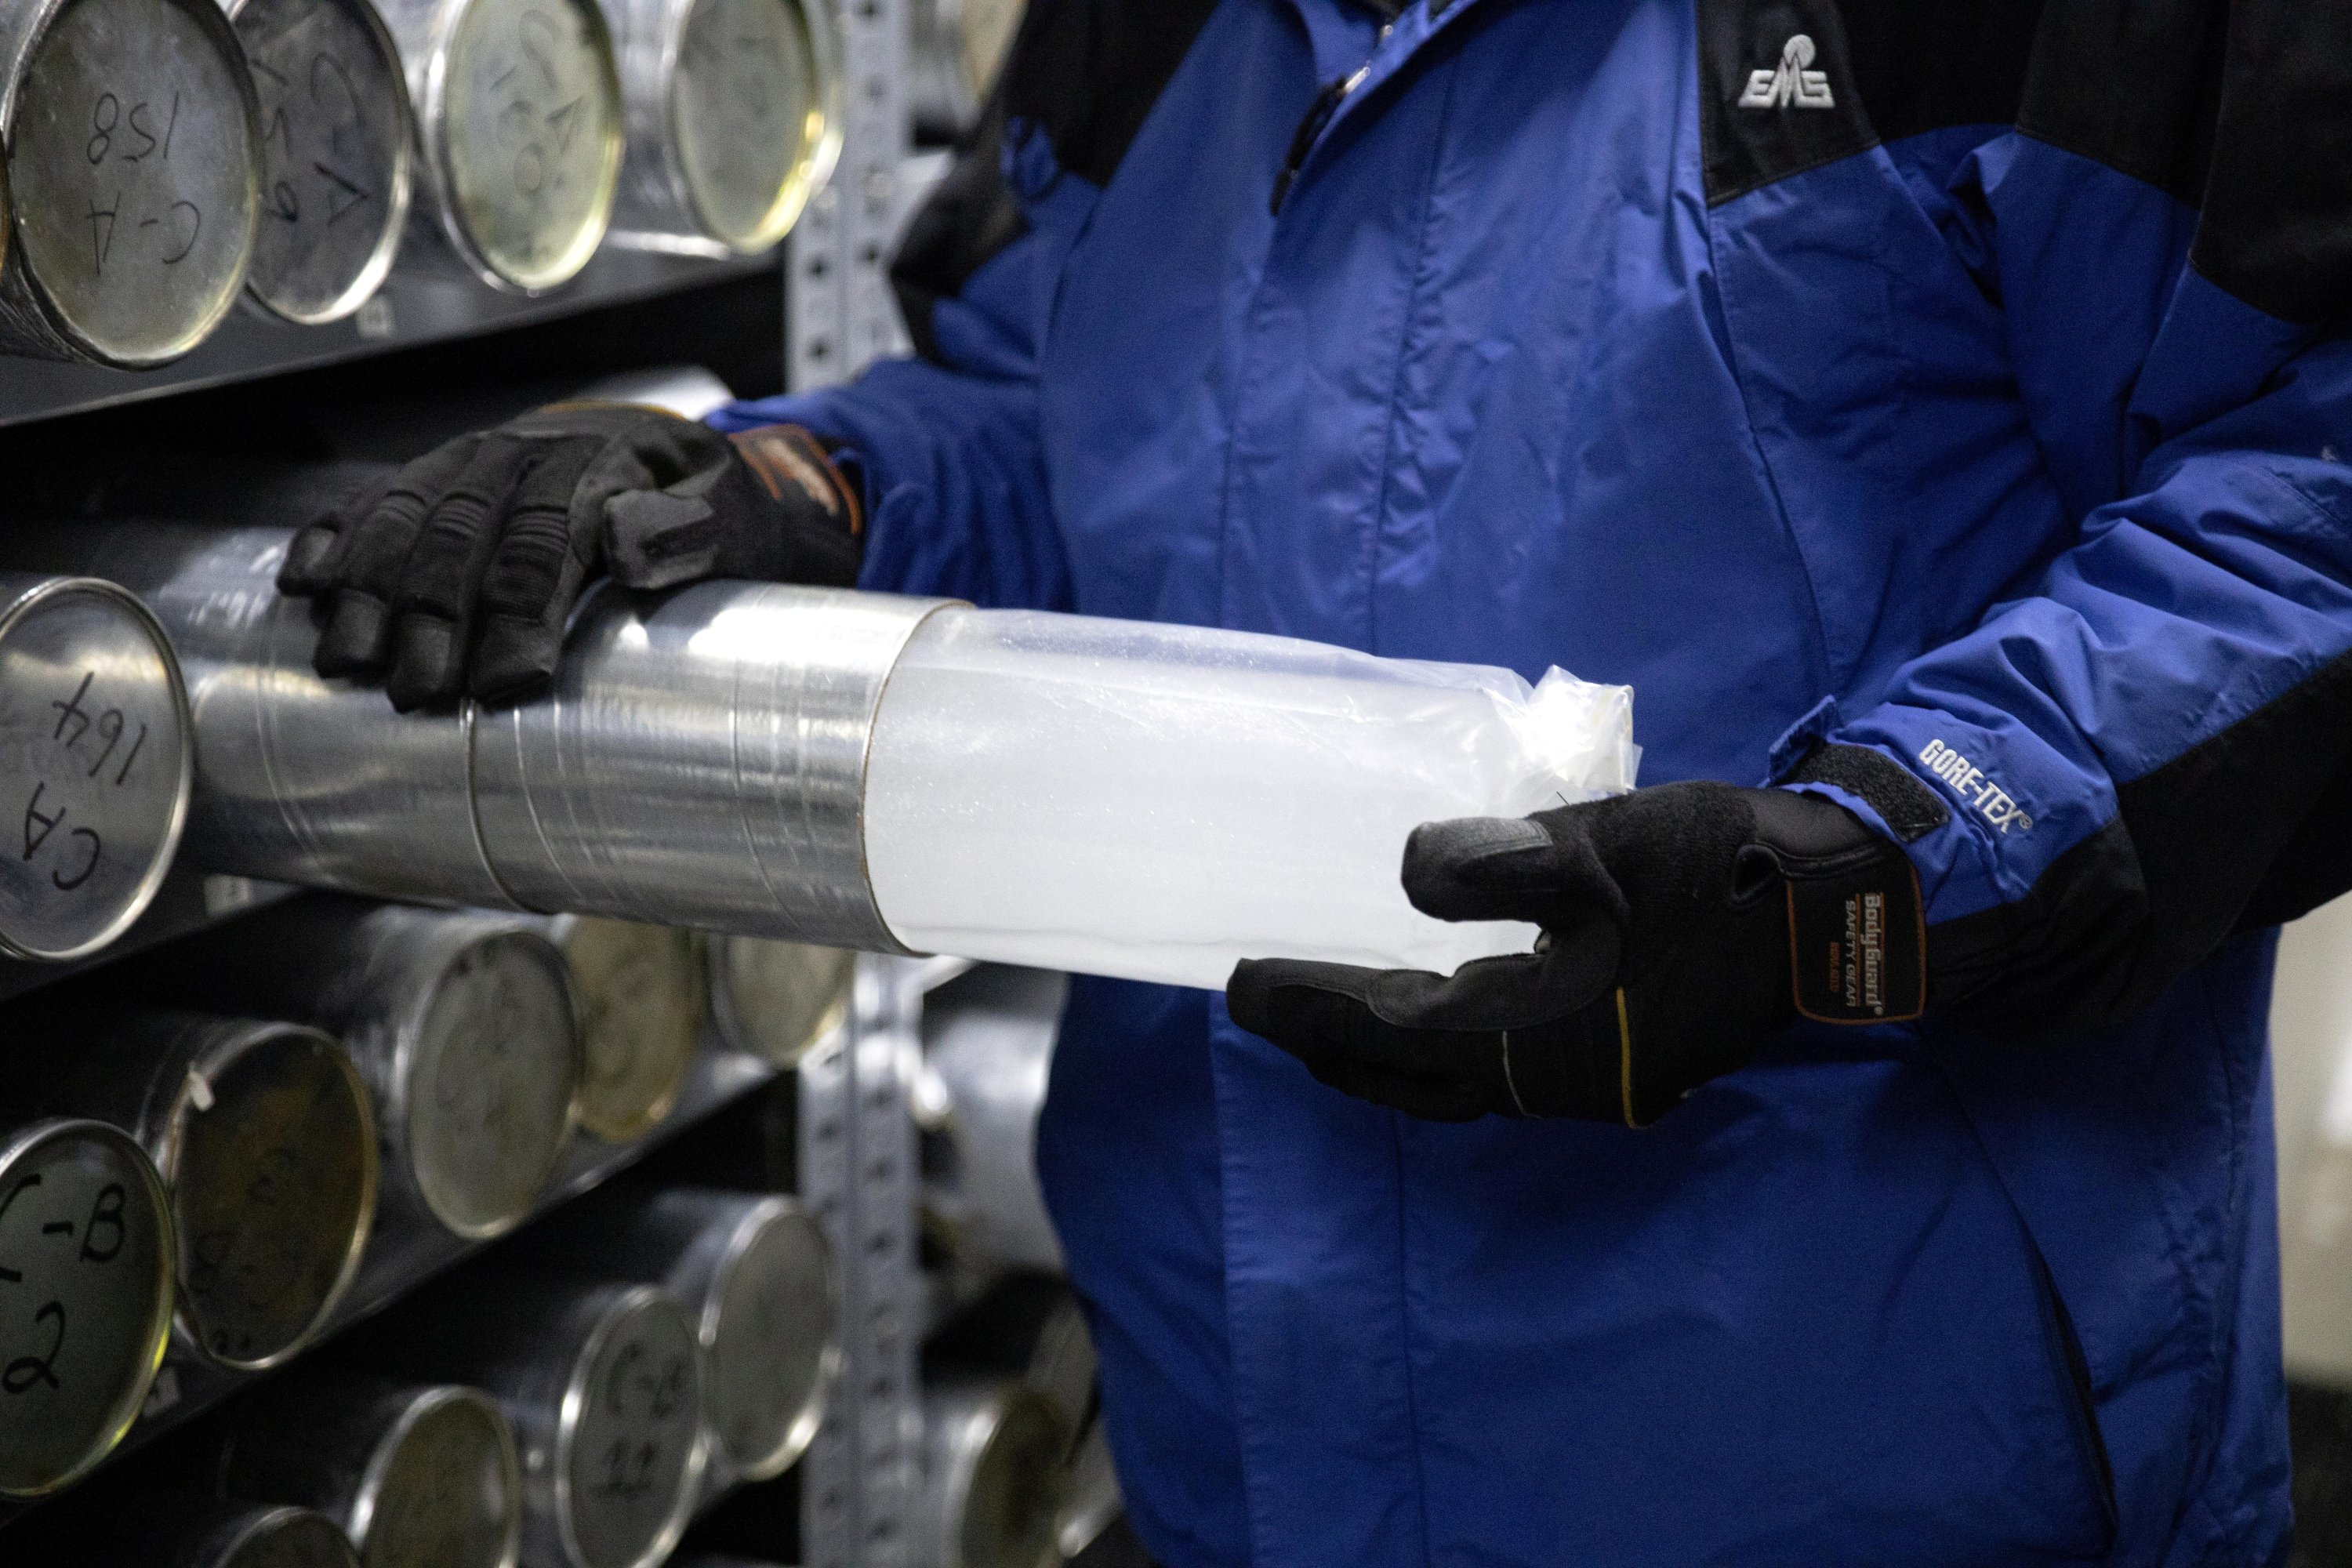 Lonnie Thompson, professor and research scientist at Ohio State University, holds an ice core sample from a glacier in the Byrd Polar and Climate Research Center in Columbus, Ohio, U.S., Jan. 15, 2021. (Reuters Photo)